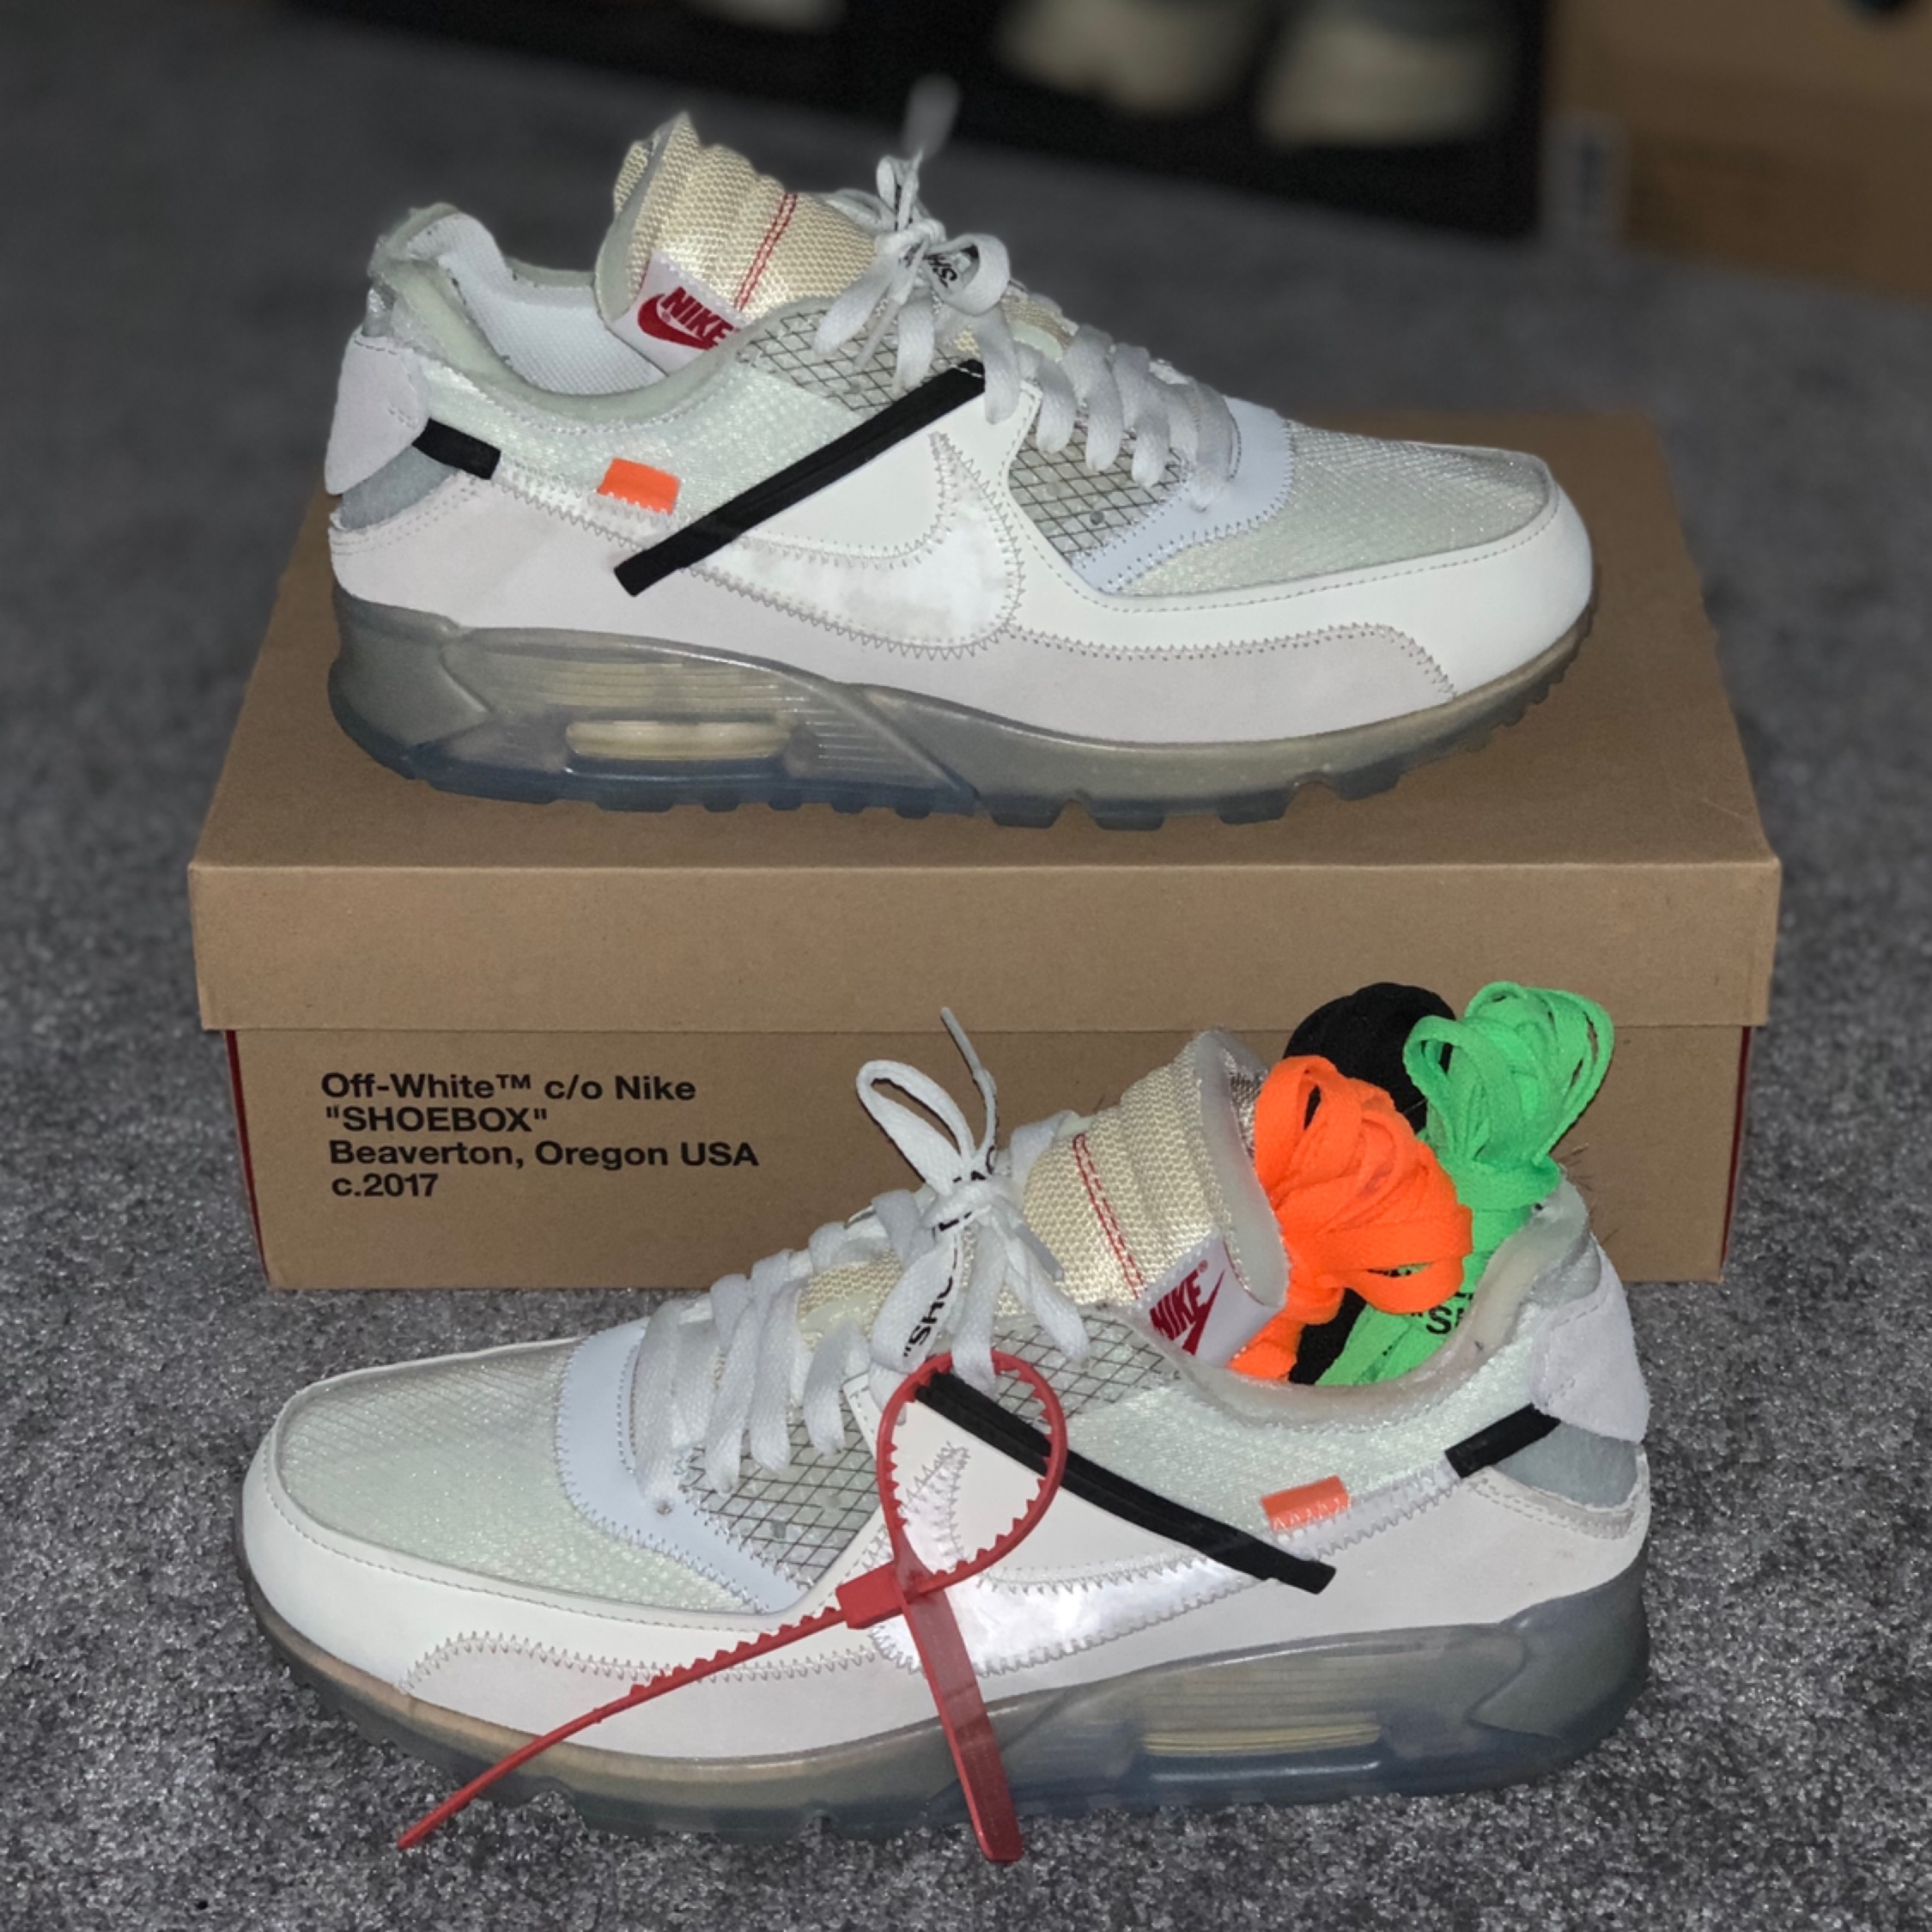 nike air max 90 off bianca stockx